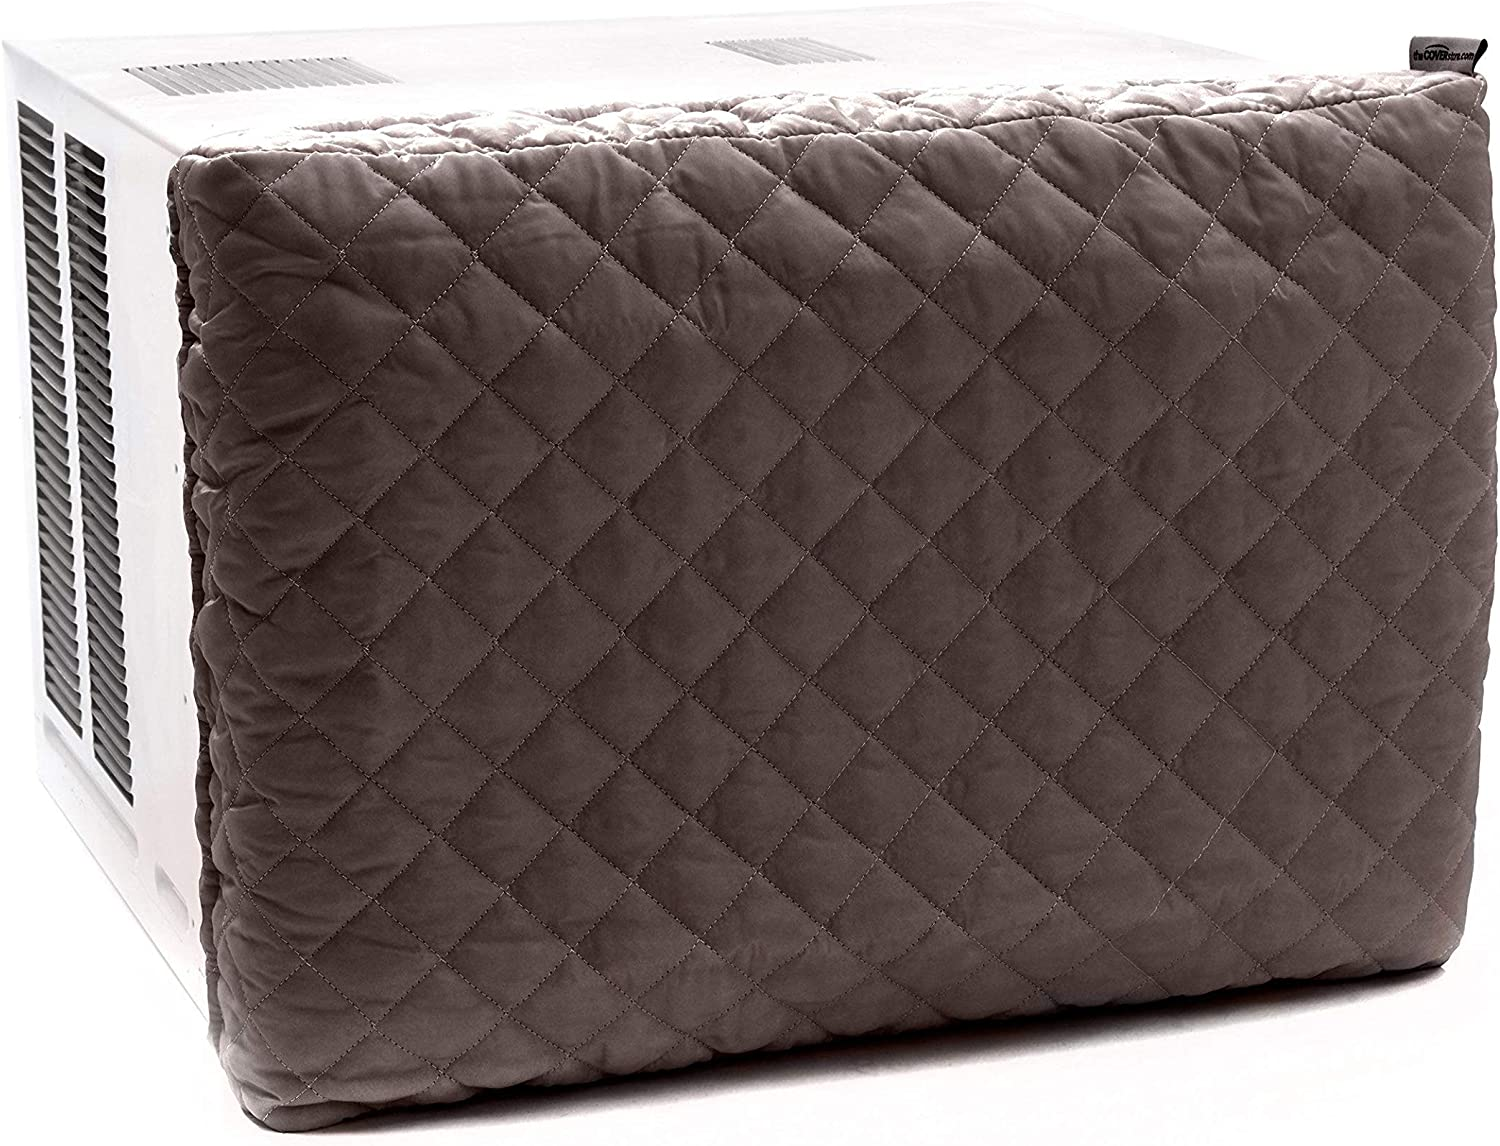 Covermates – Indoor Air Conditioner Cover – 21W x 2.5D x 15H – Diamond – Fitted Elastic - Prevents Drafts - 2 YR Warranty – Year Round Protection